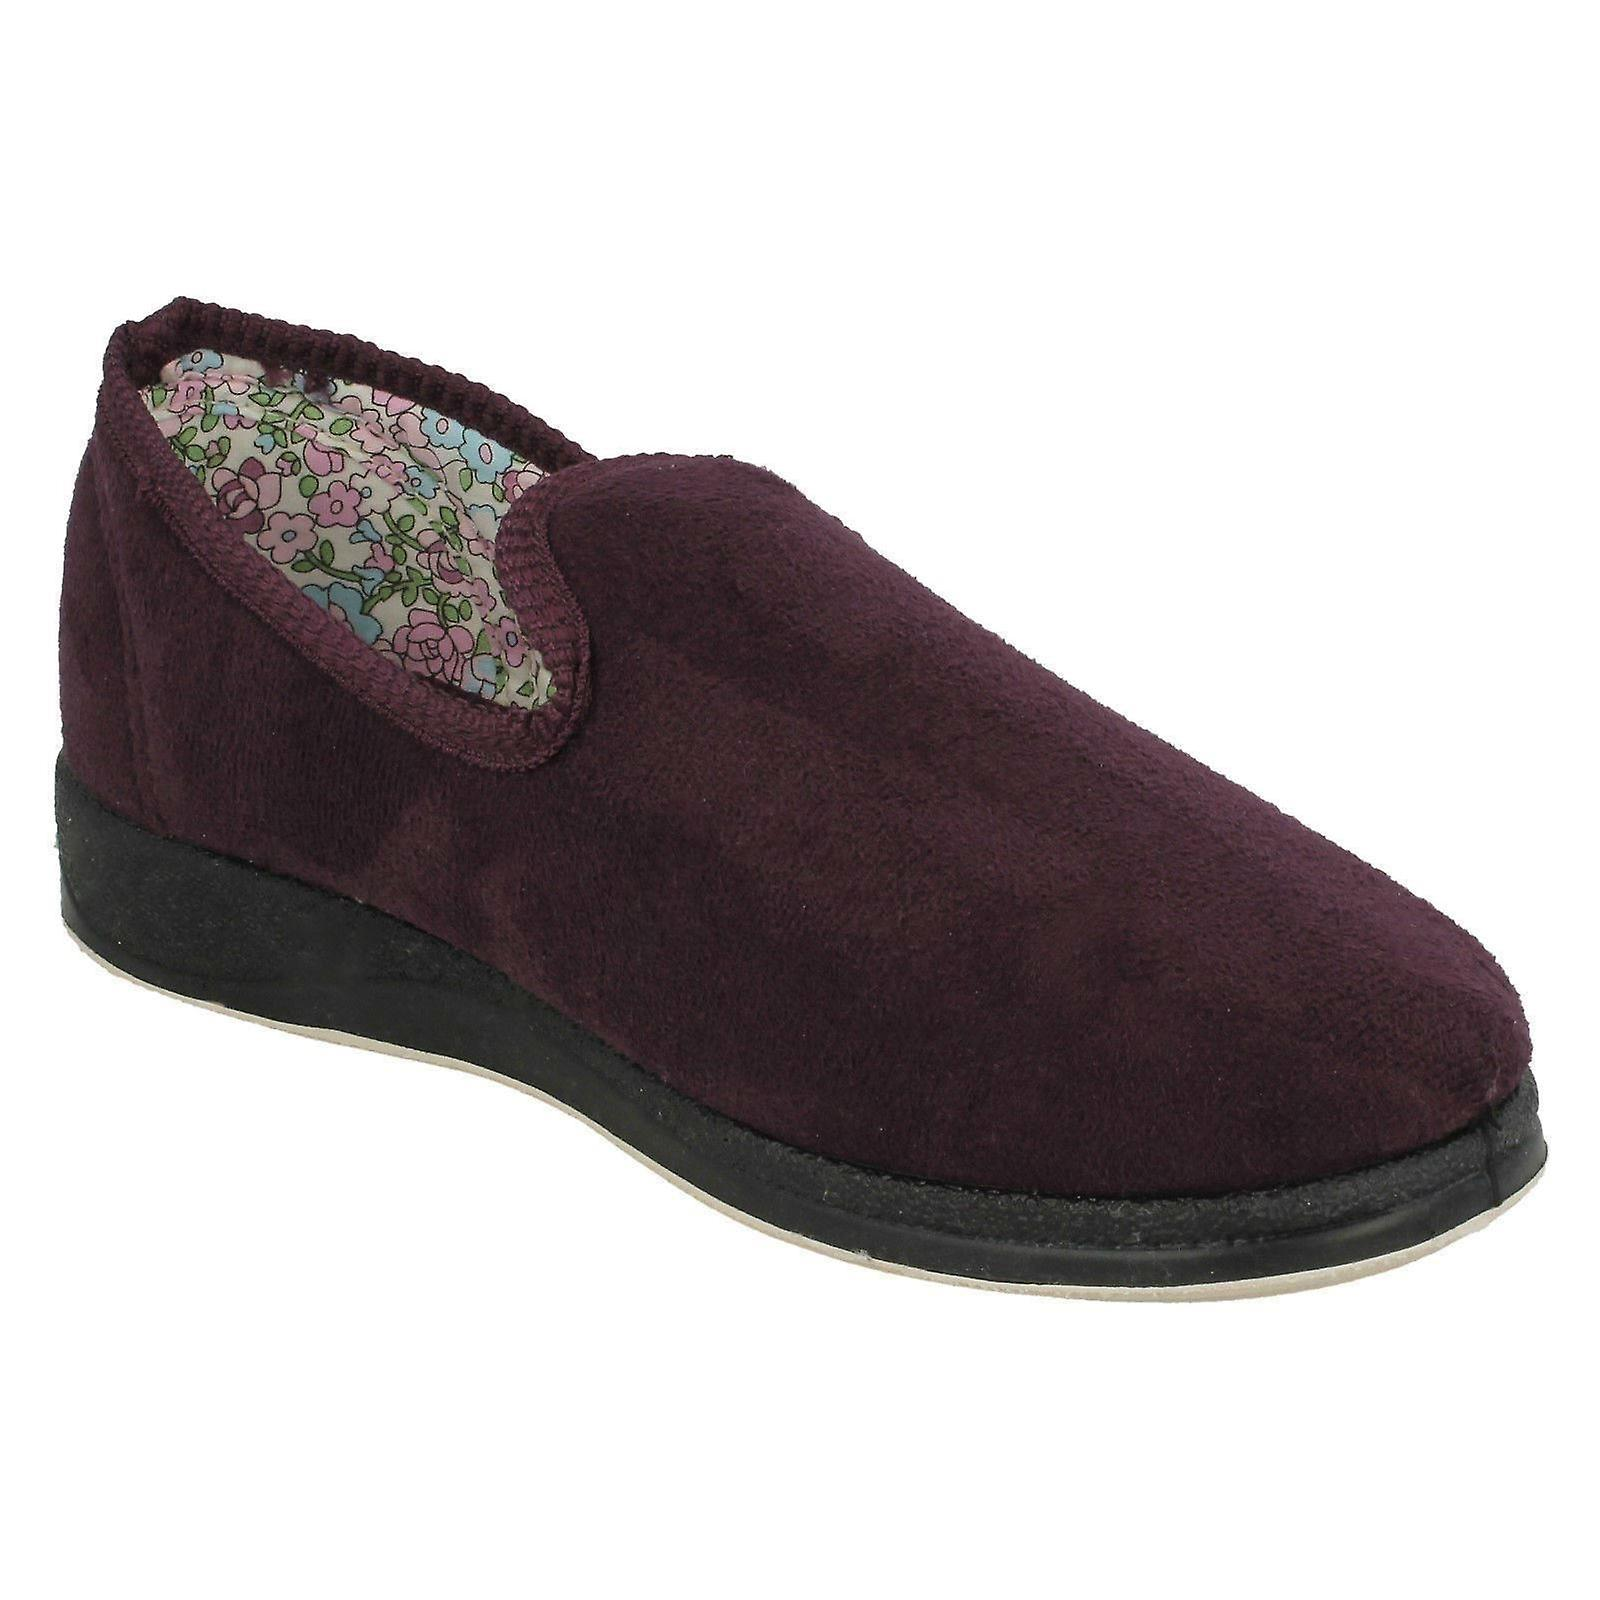 43 EU 11 Size Repose Padders Size Size Textile On 9 Purple Slipper Ladies Slip US UK Shoes 18 2E 4OZ6qwg